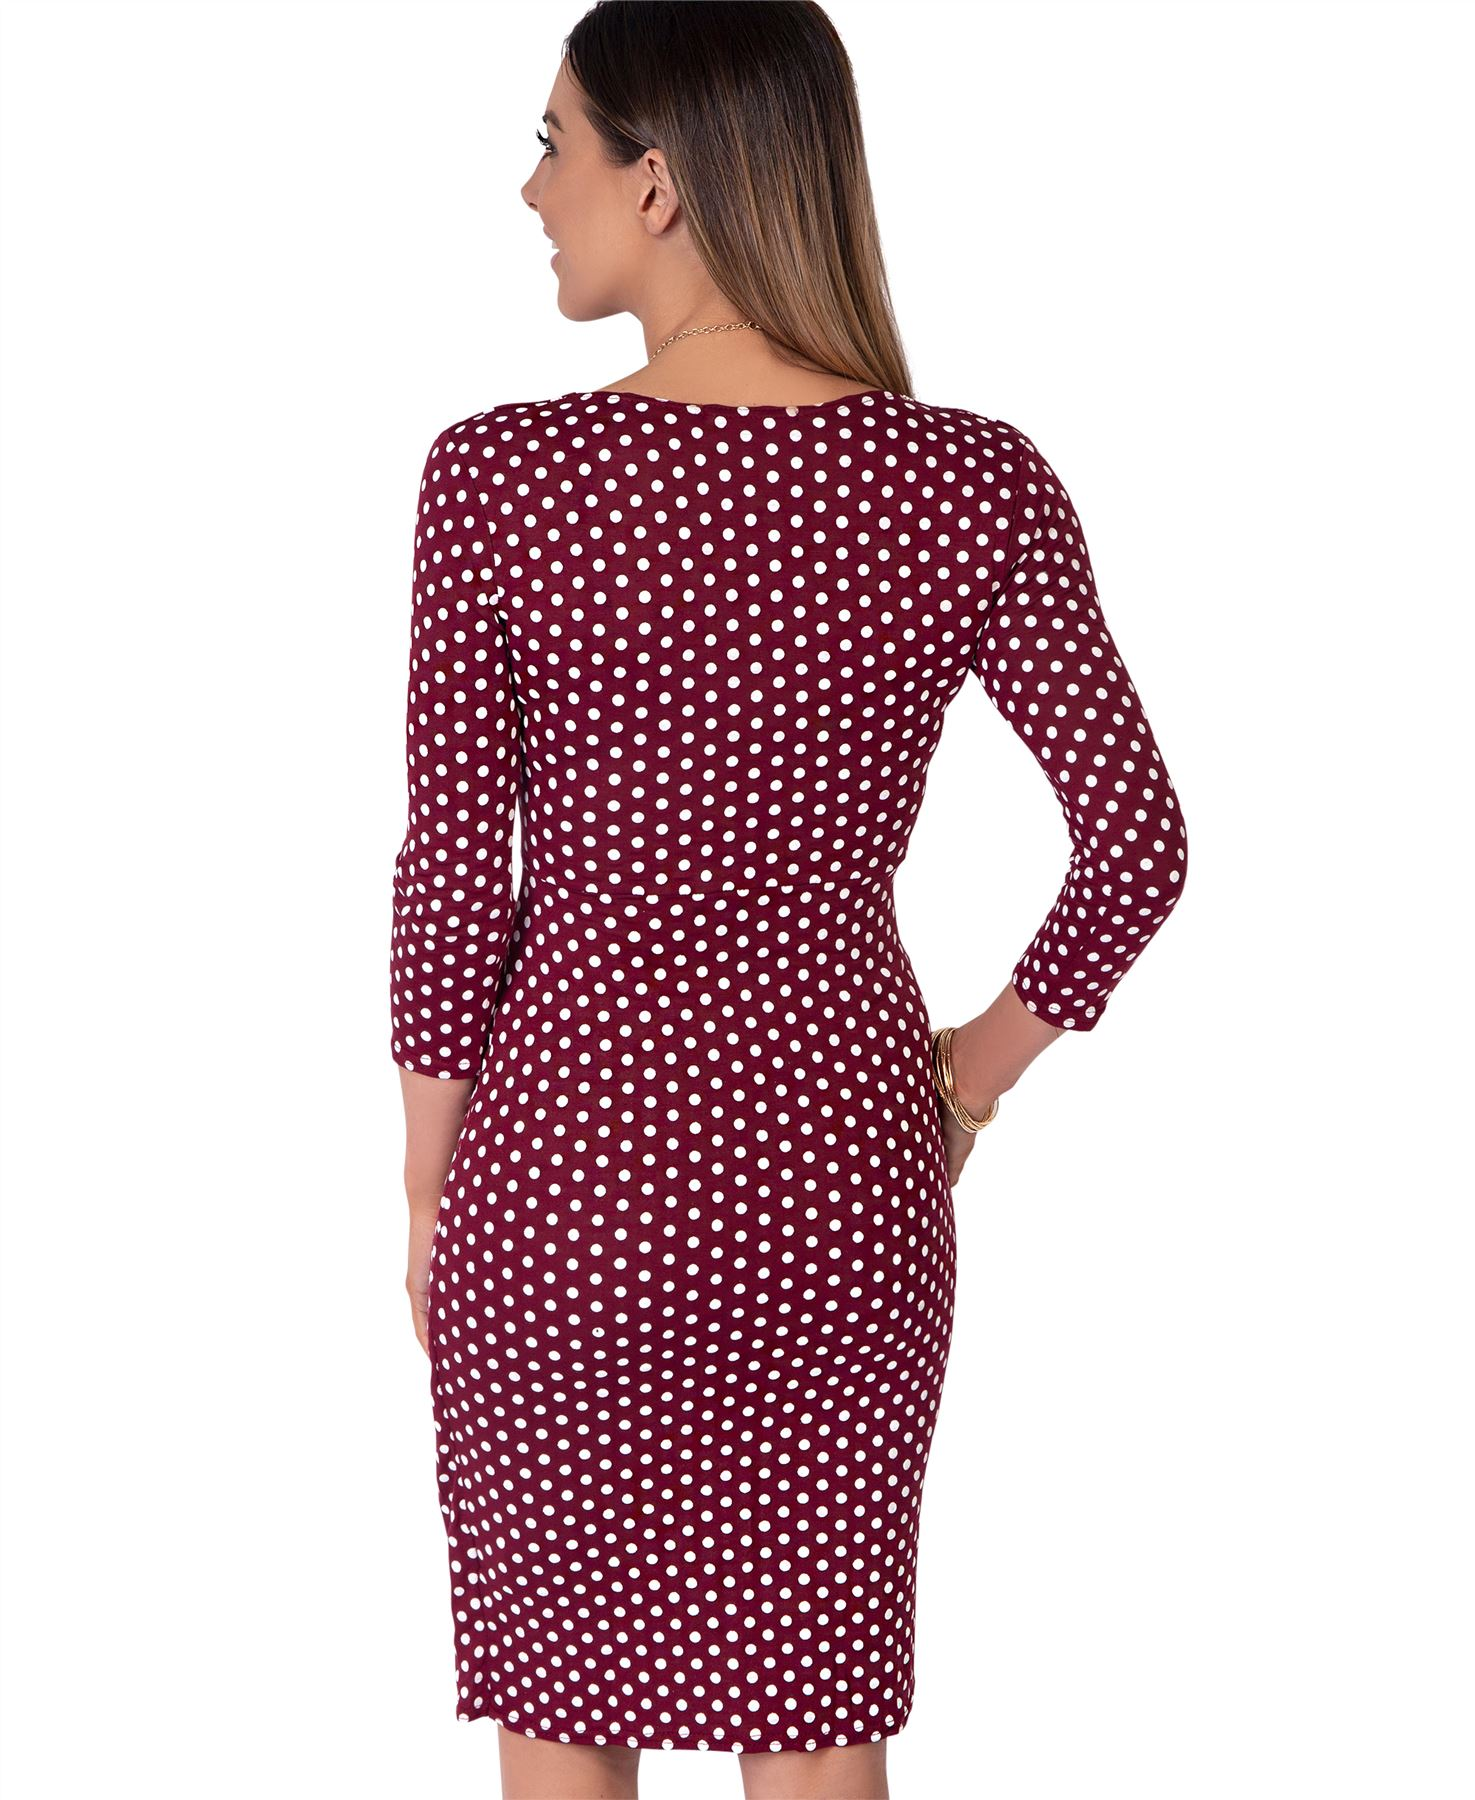 Womens-Polka-Dot-Dress-Pleated-Skirt-Wrap-Front-Midi-V-Neck-Top-Swing-Party thumbnail 37